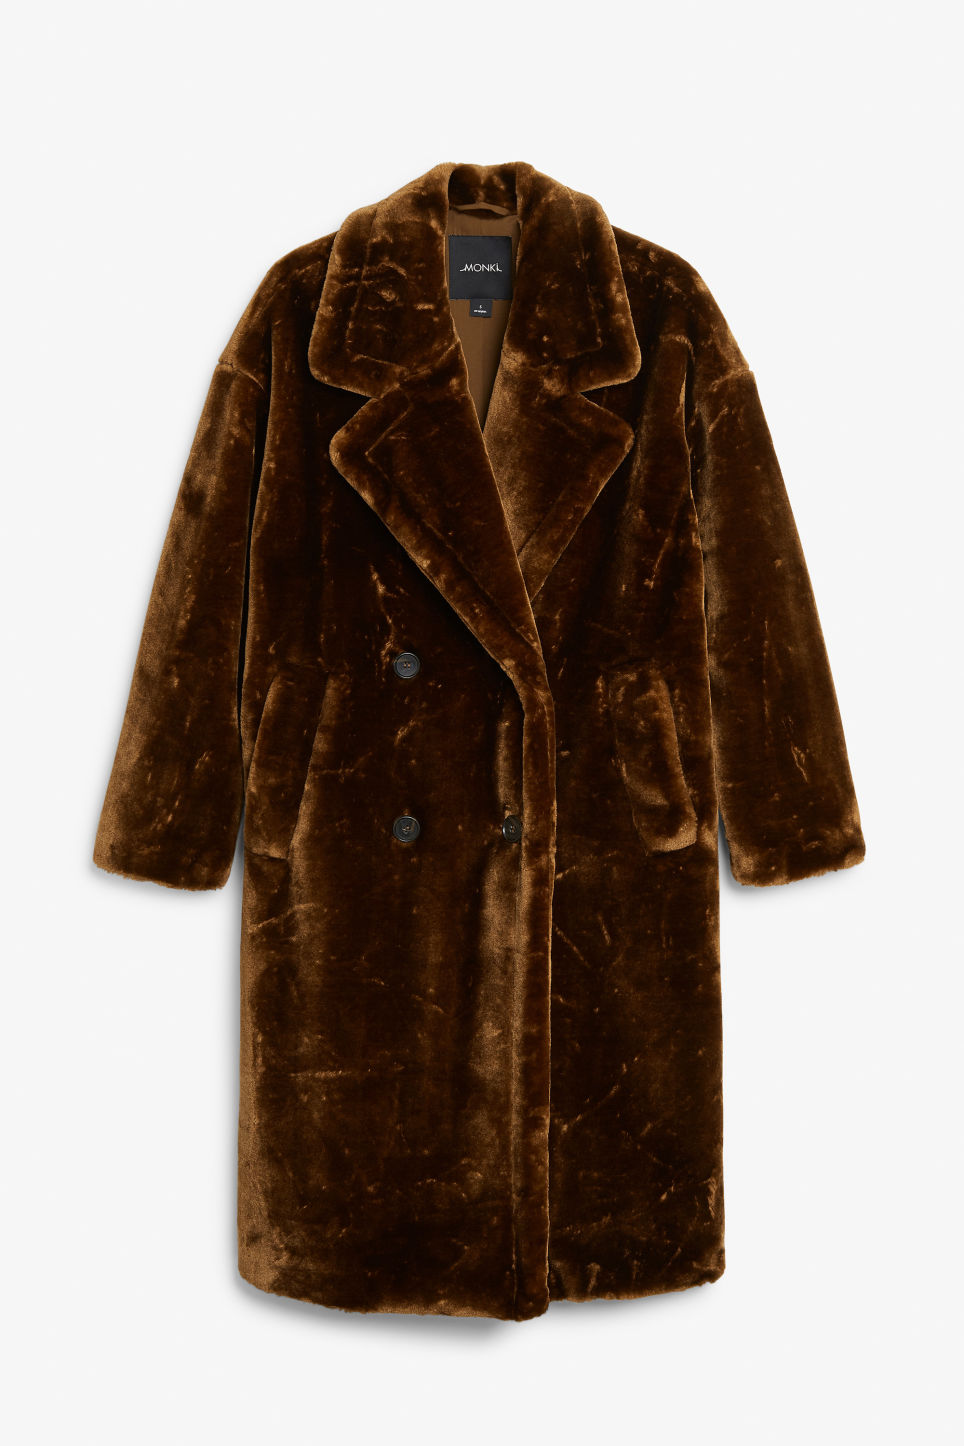 Long faux fur coat - Bear brown - Coats   Jackets - Monki 3dd36574200